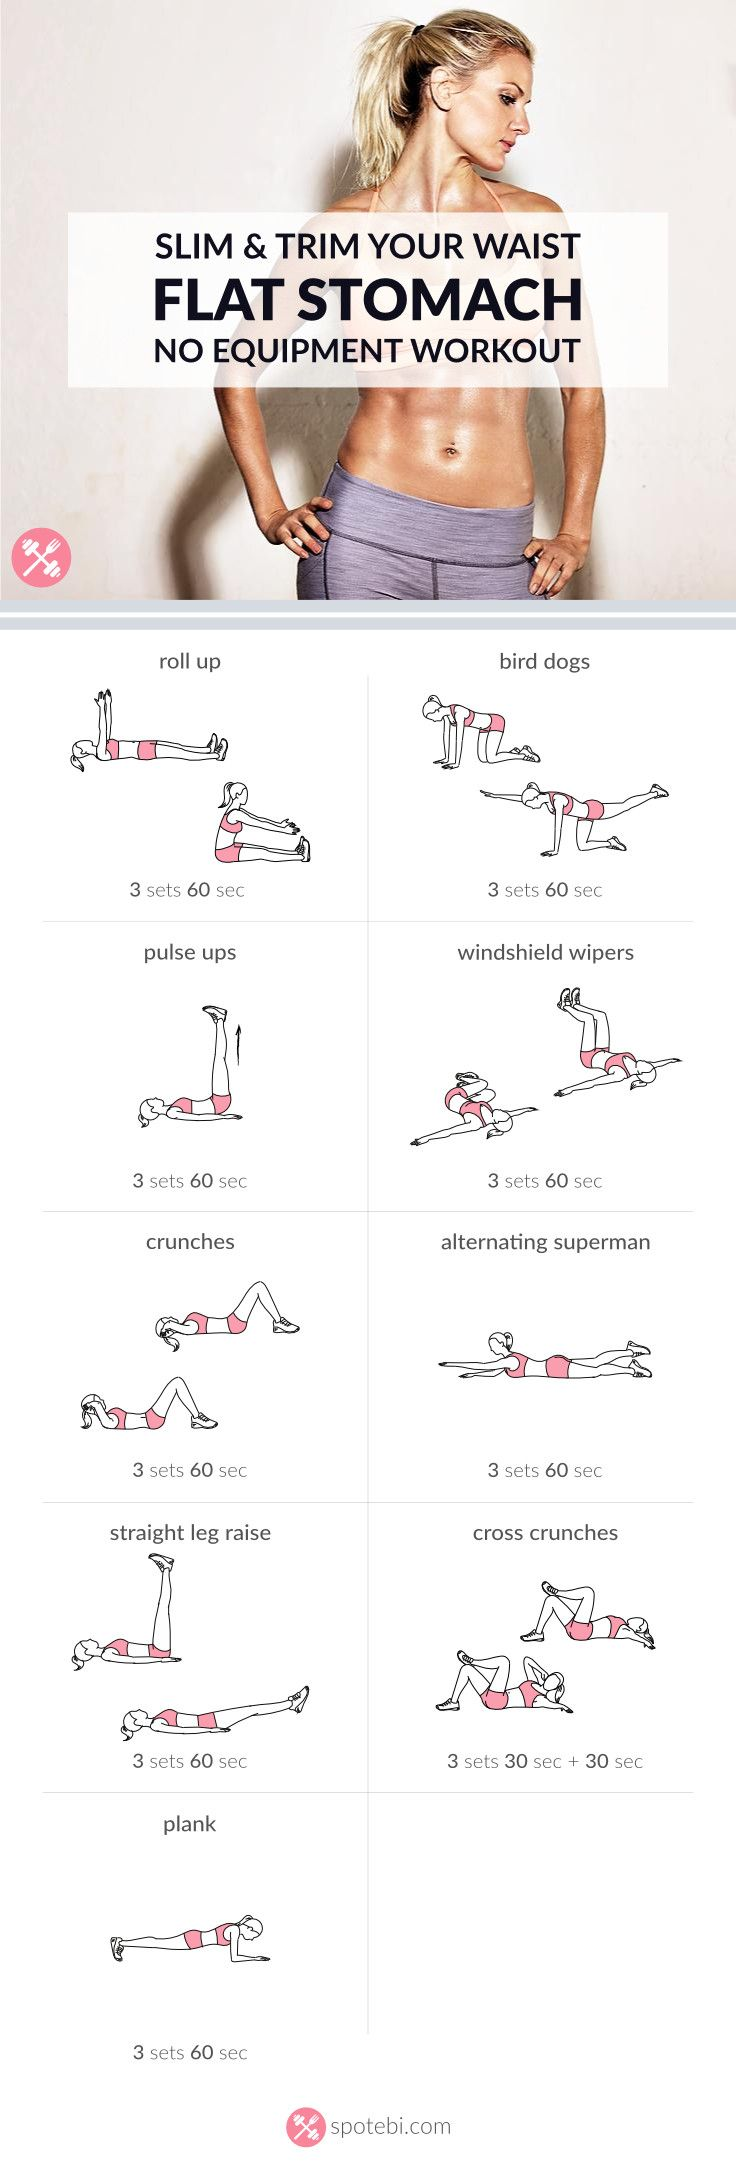 9 Amazing Flat Belly Workouts To - 126.0KB